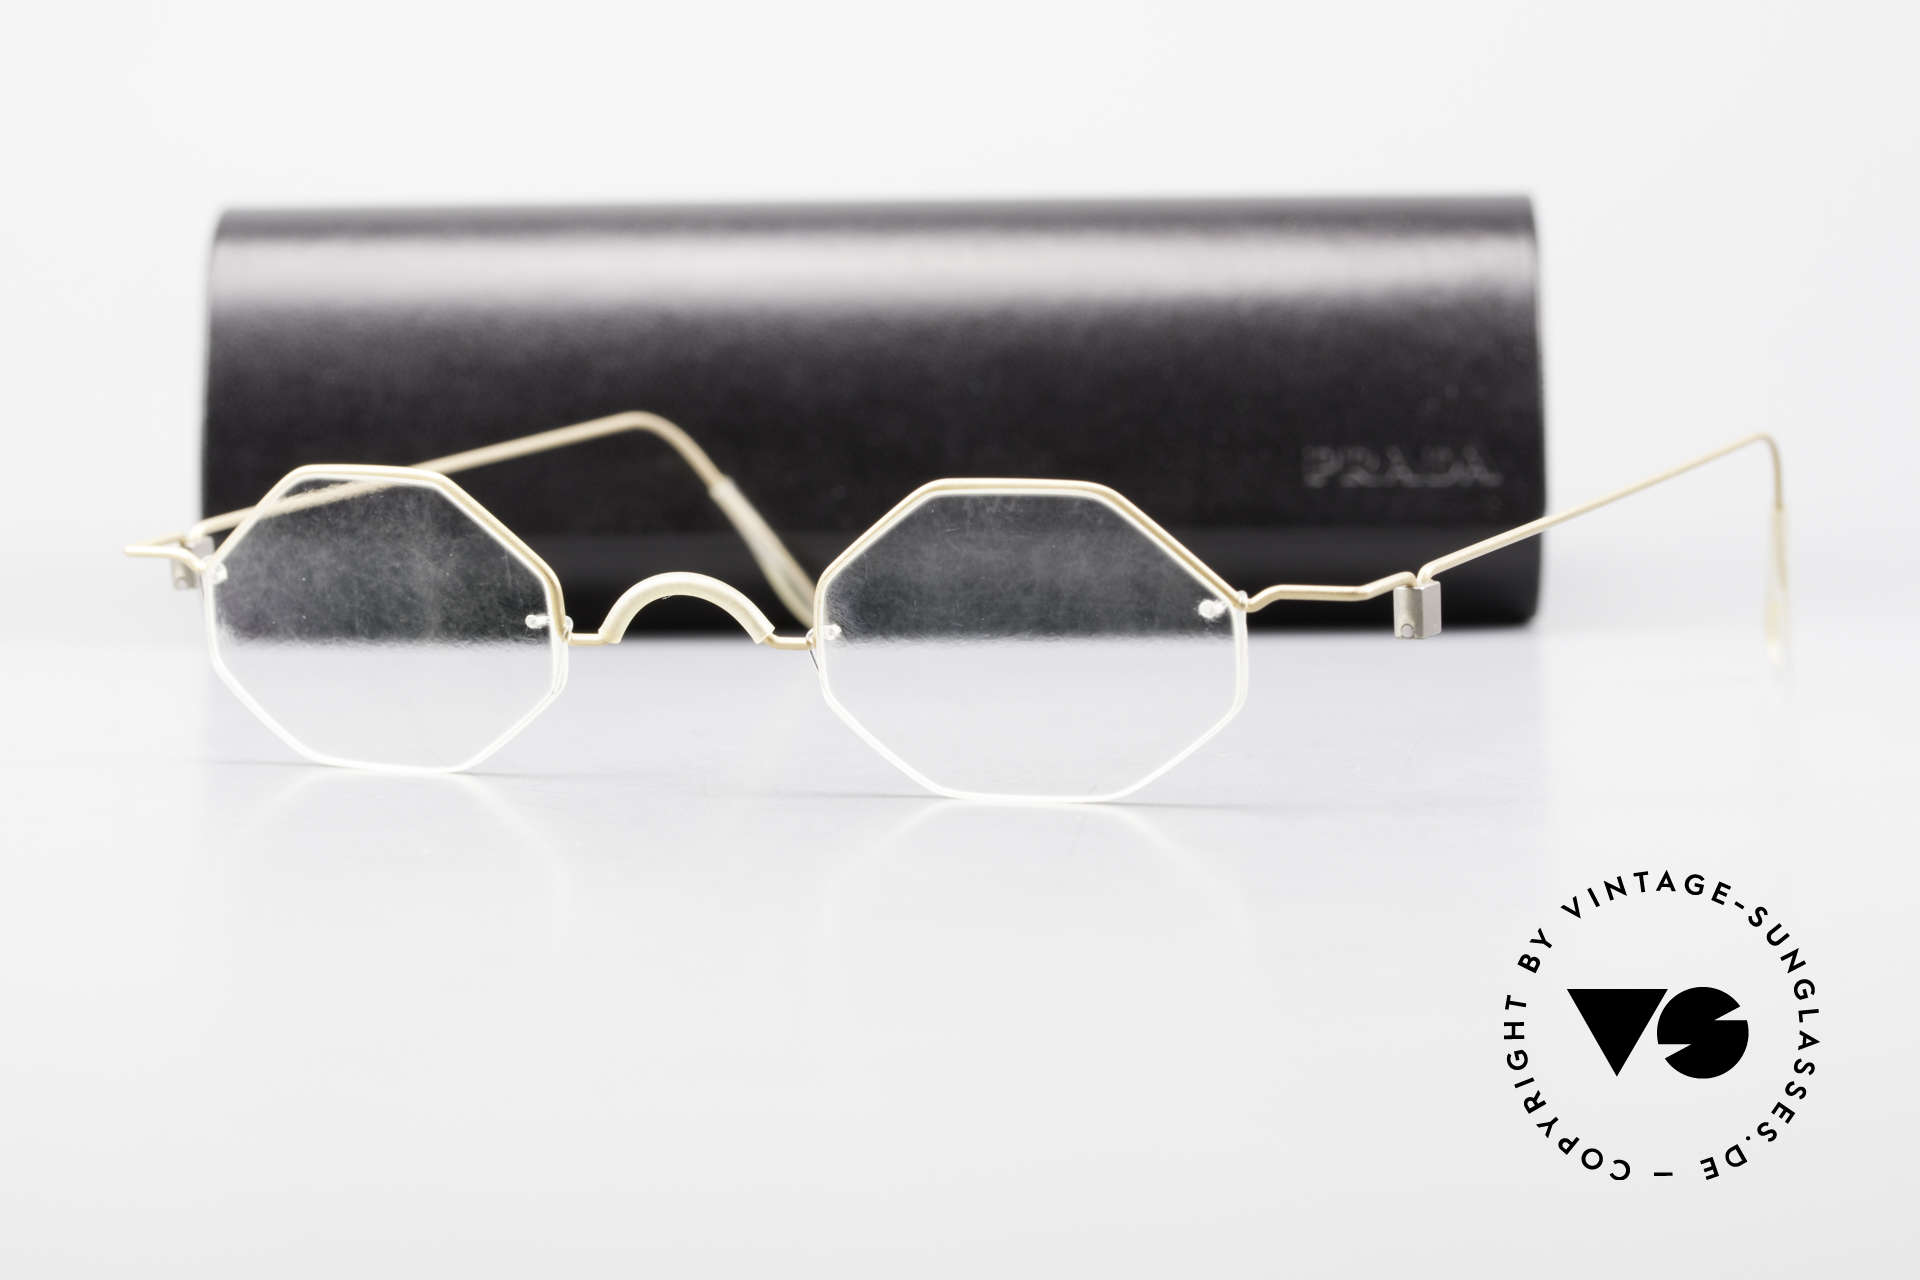 Markus T Octagonal Connoisseur Frame, extremely strong, resilient and flexible (and 3g only!), Made for Men and Women